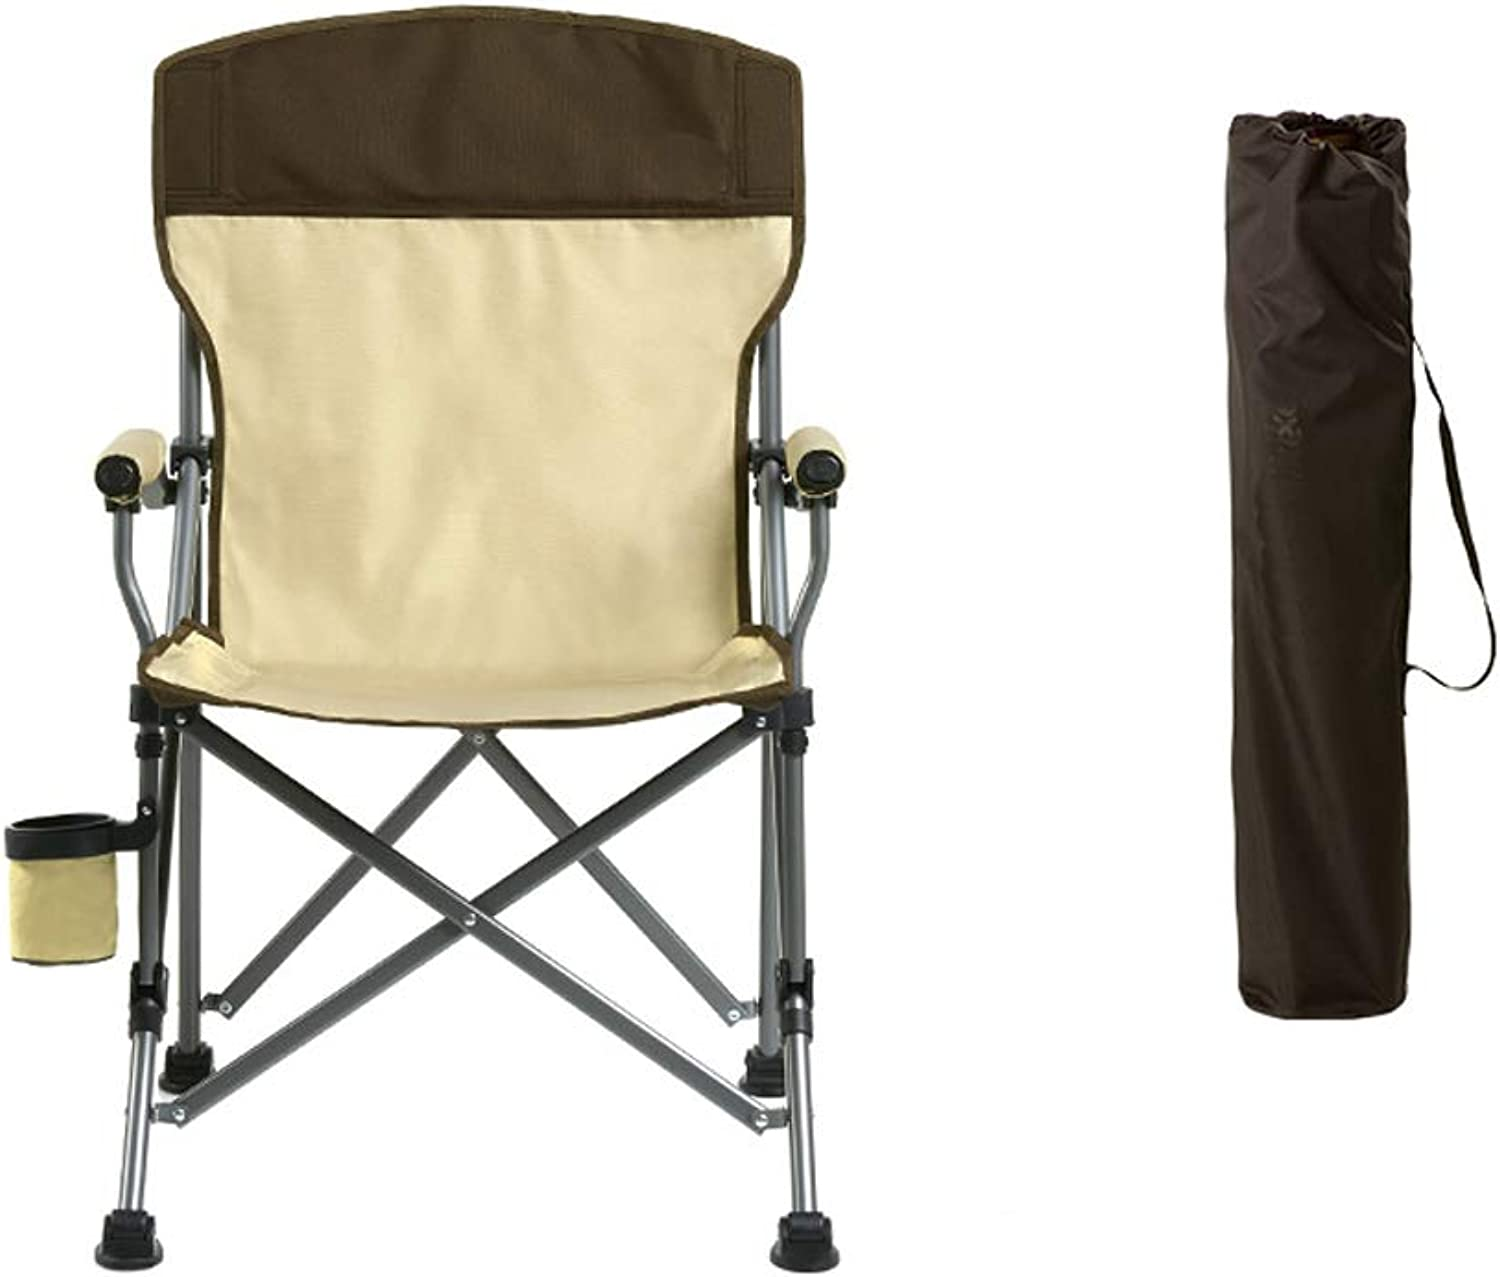 Folding Multi-Function Portable Fishing Stool for All Terrains, Strong Load-Bearing Capacity HBJP